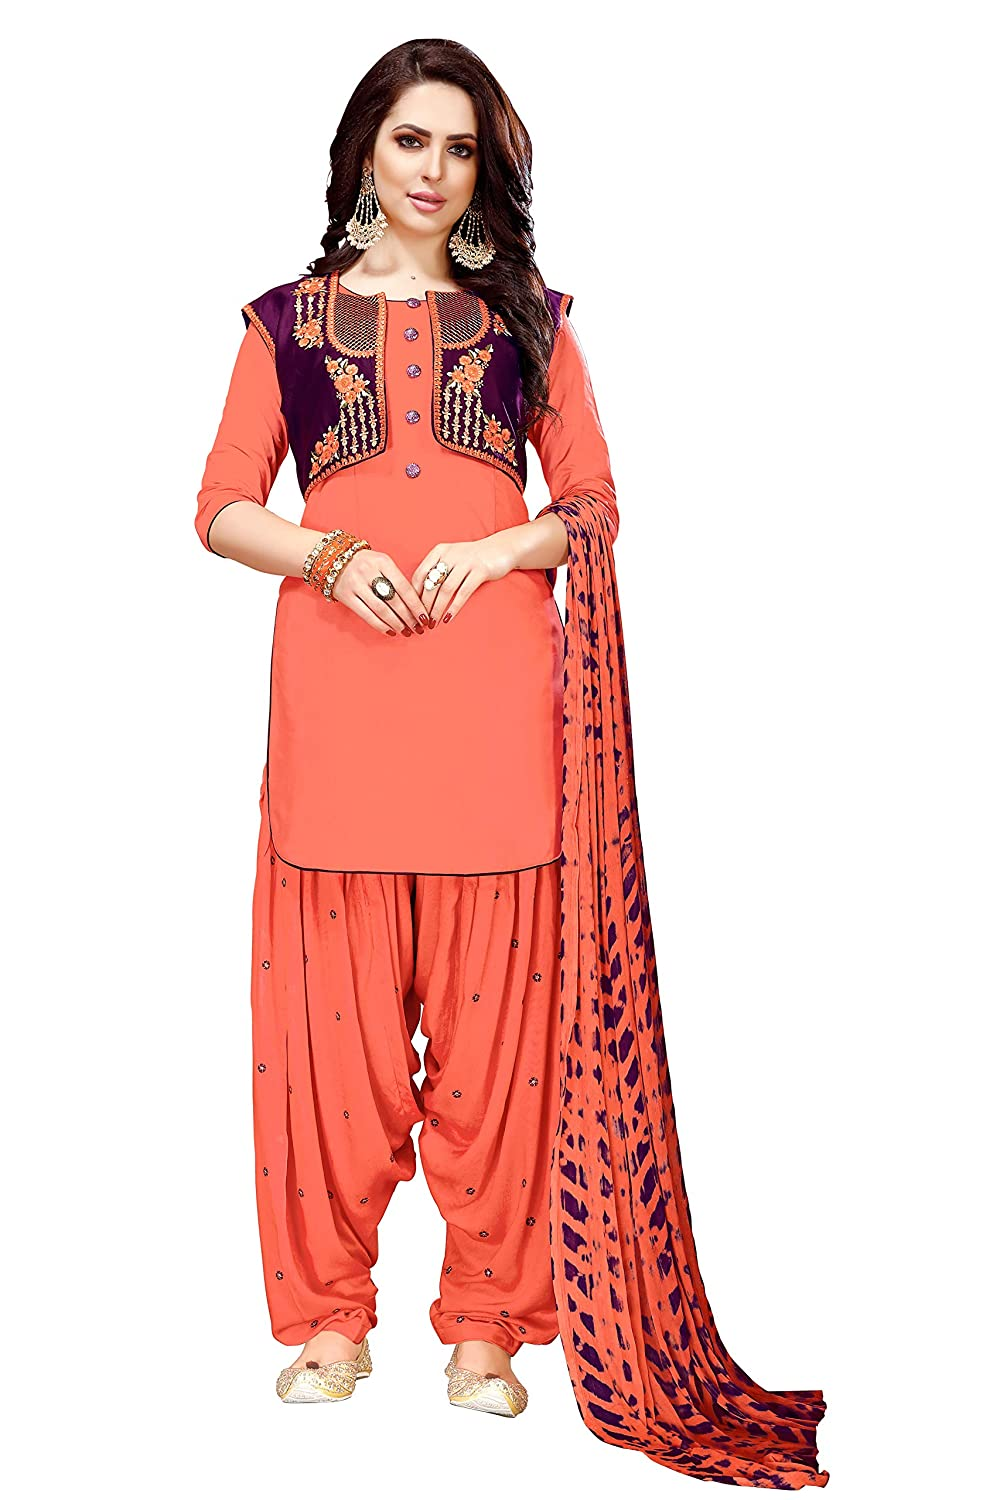 orange ziya New Women's Ethnic Indian Pakistani cotton's Patiala 9001 Sky bluee